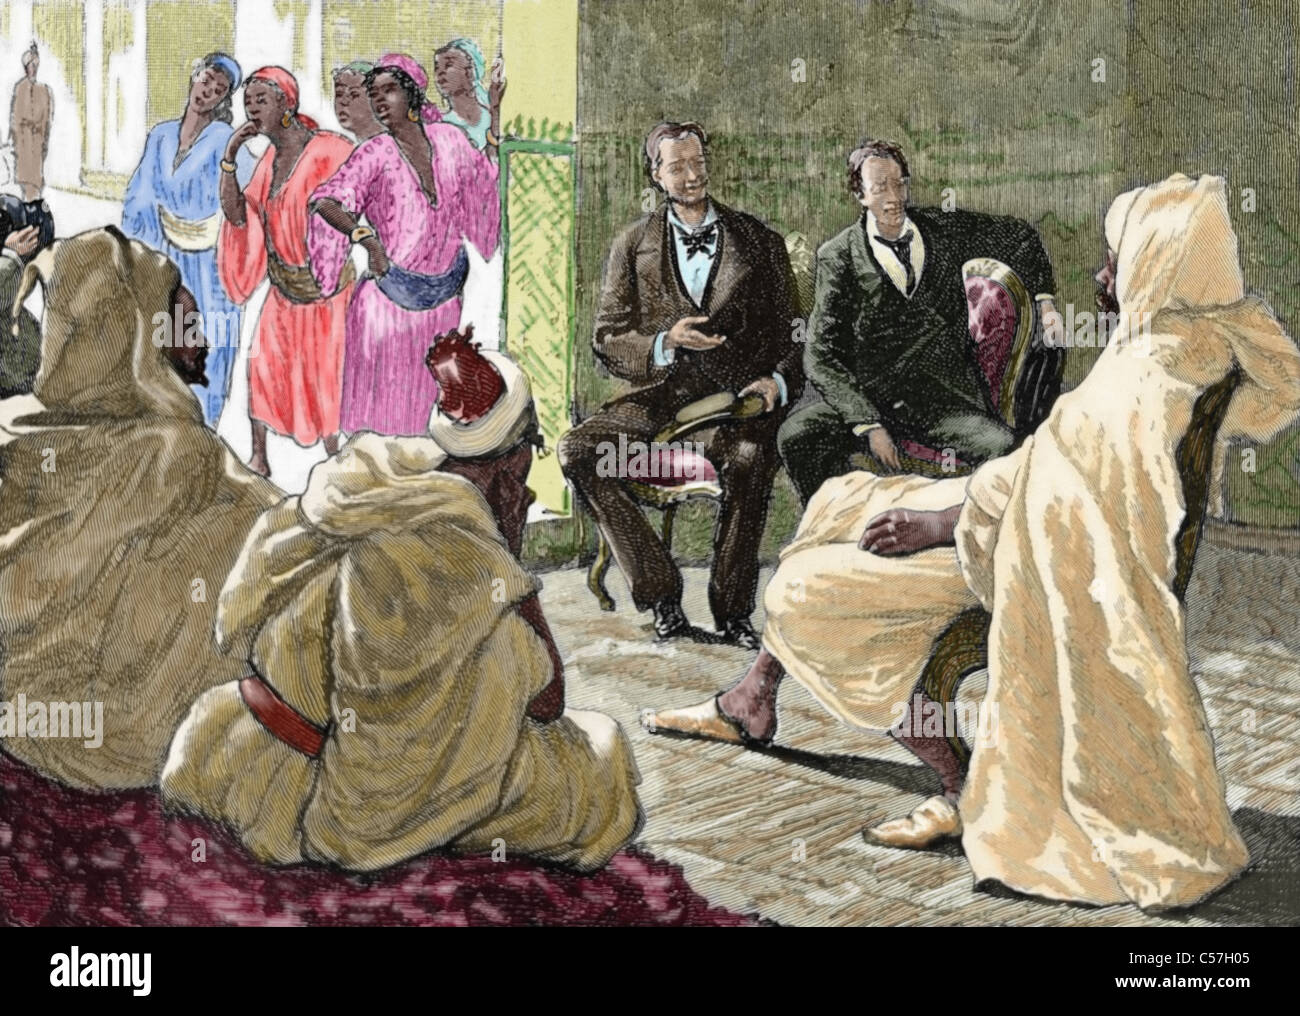 Colonialism. Morocco. Reception of the Grand Vizier to a French diplomat committee. - Stock Image